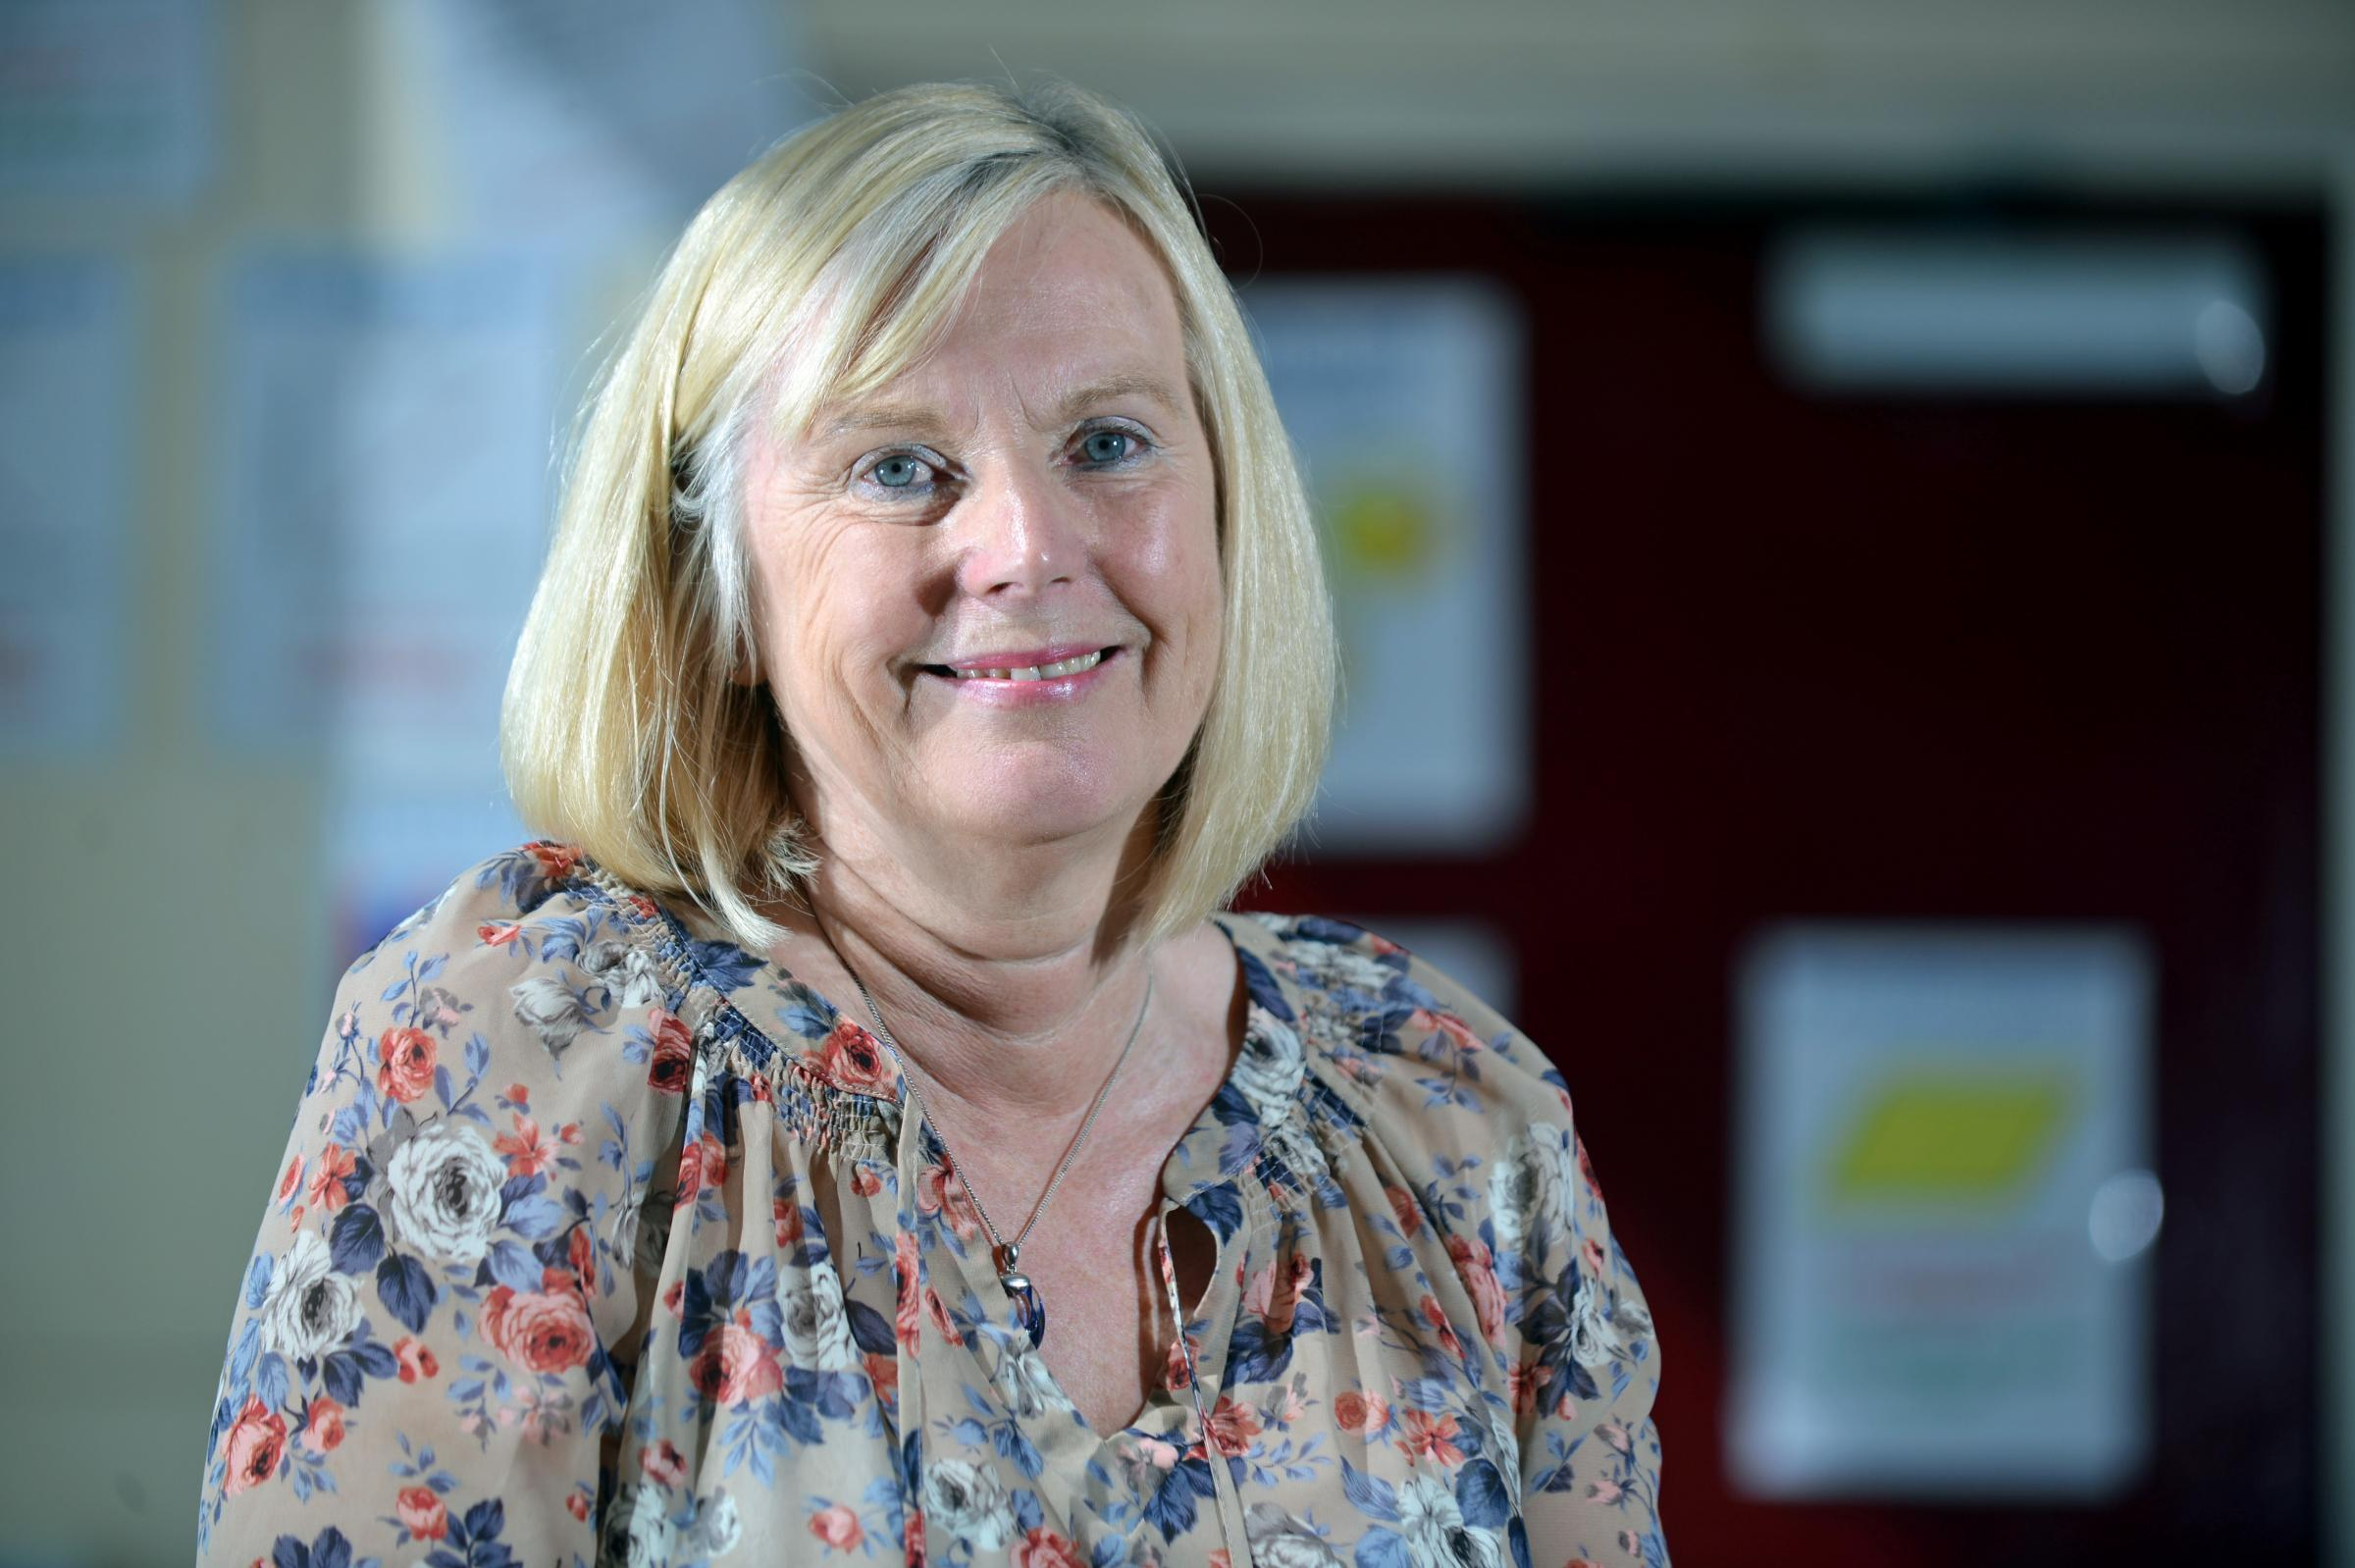 Pupils bid a fond farewell to Queensbury teacher Theresa after 41 years